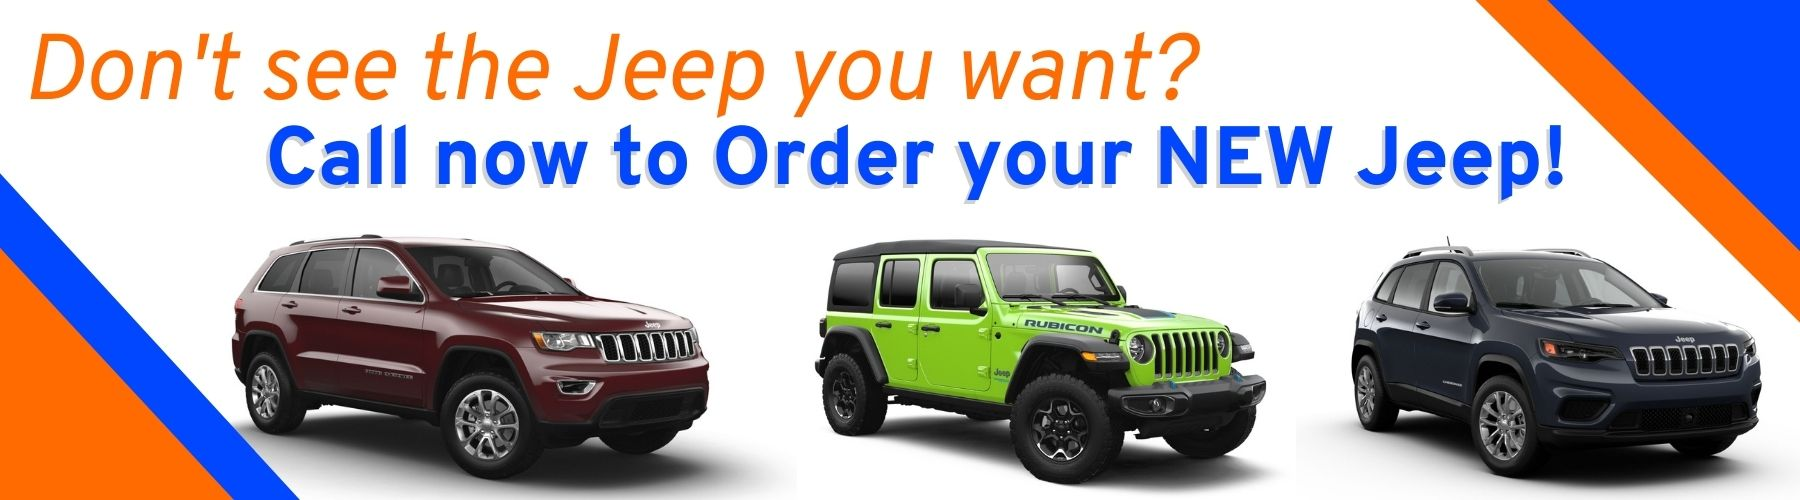 Order your Jeep